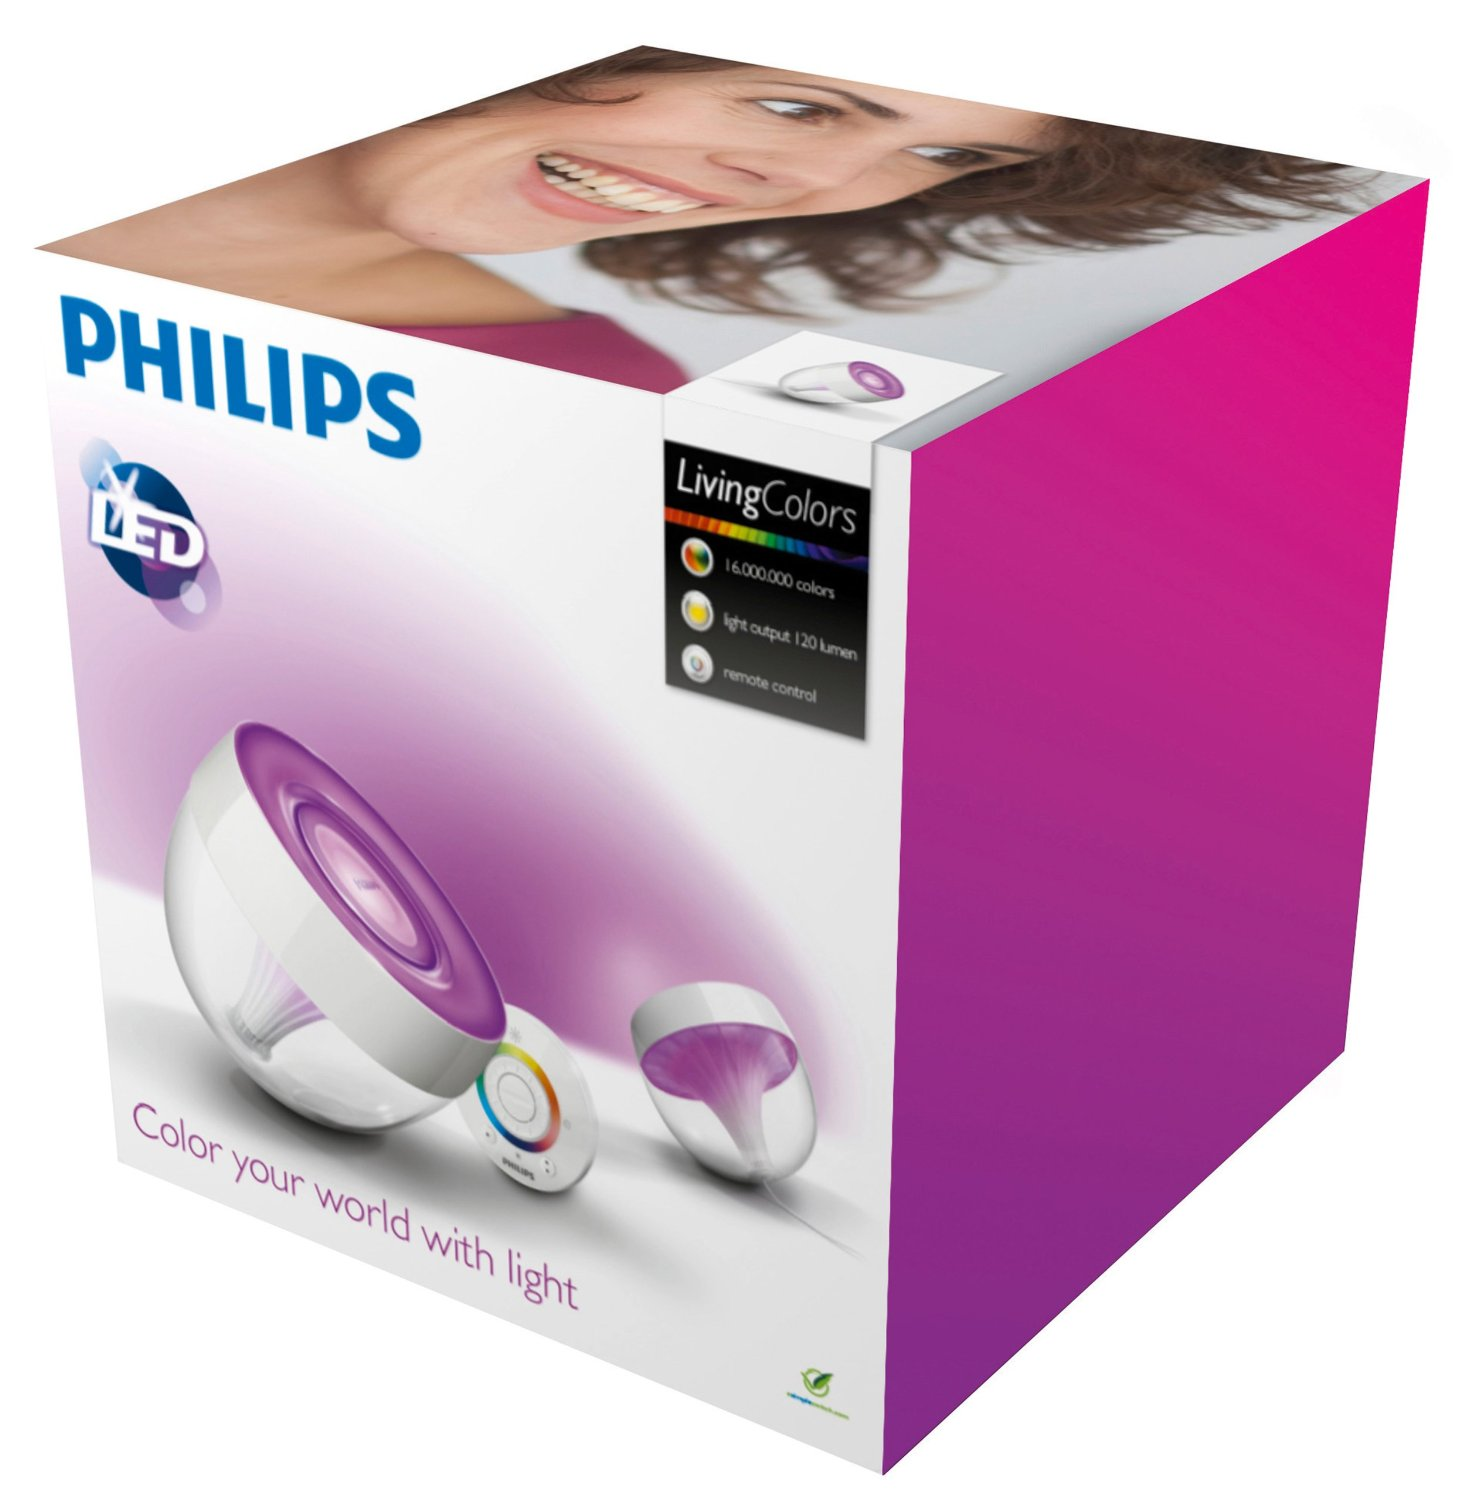 Philips livingcolors iris led colour changing table lamp clear philips livingcolors iris led colour changing table lamp clear remote control thumbnail 2 parisarafo Image collections